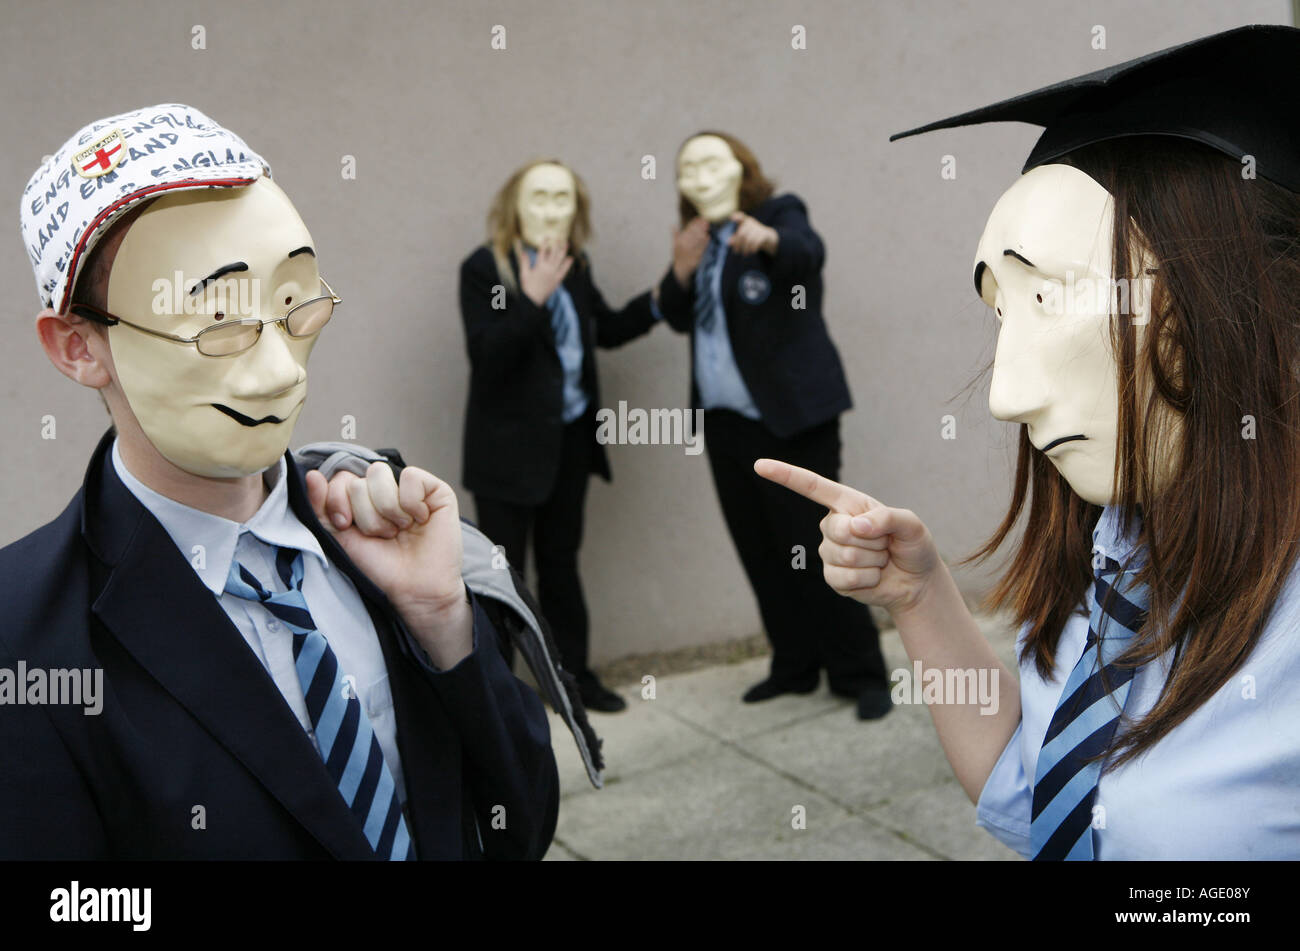 Drama students acting out a play using face masks - Stock Image